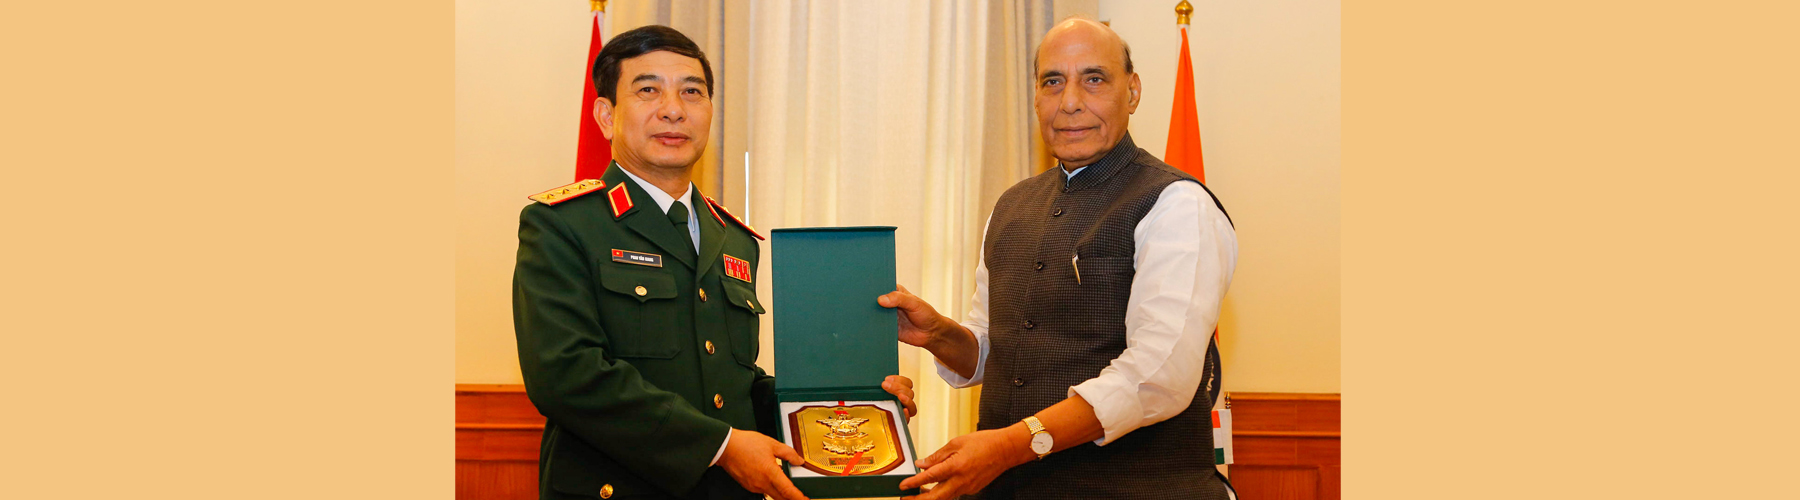 Raksha Mantri Shri Rajnath Singh and Chief of General Staff, Vietnam People Army & Deputy Minister of National Defence Sr Lt Gen Phan Van Giang exchanging a memento after talks on defence cooperation between the two countries in New Delhi on Monday, Novem